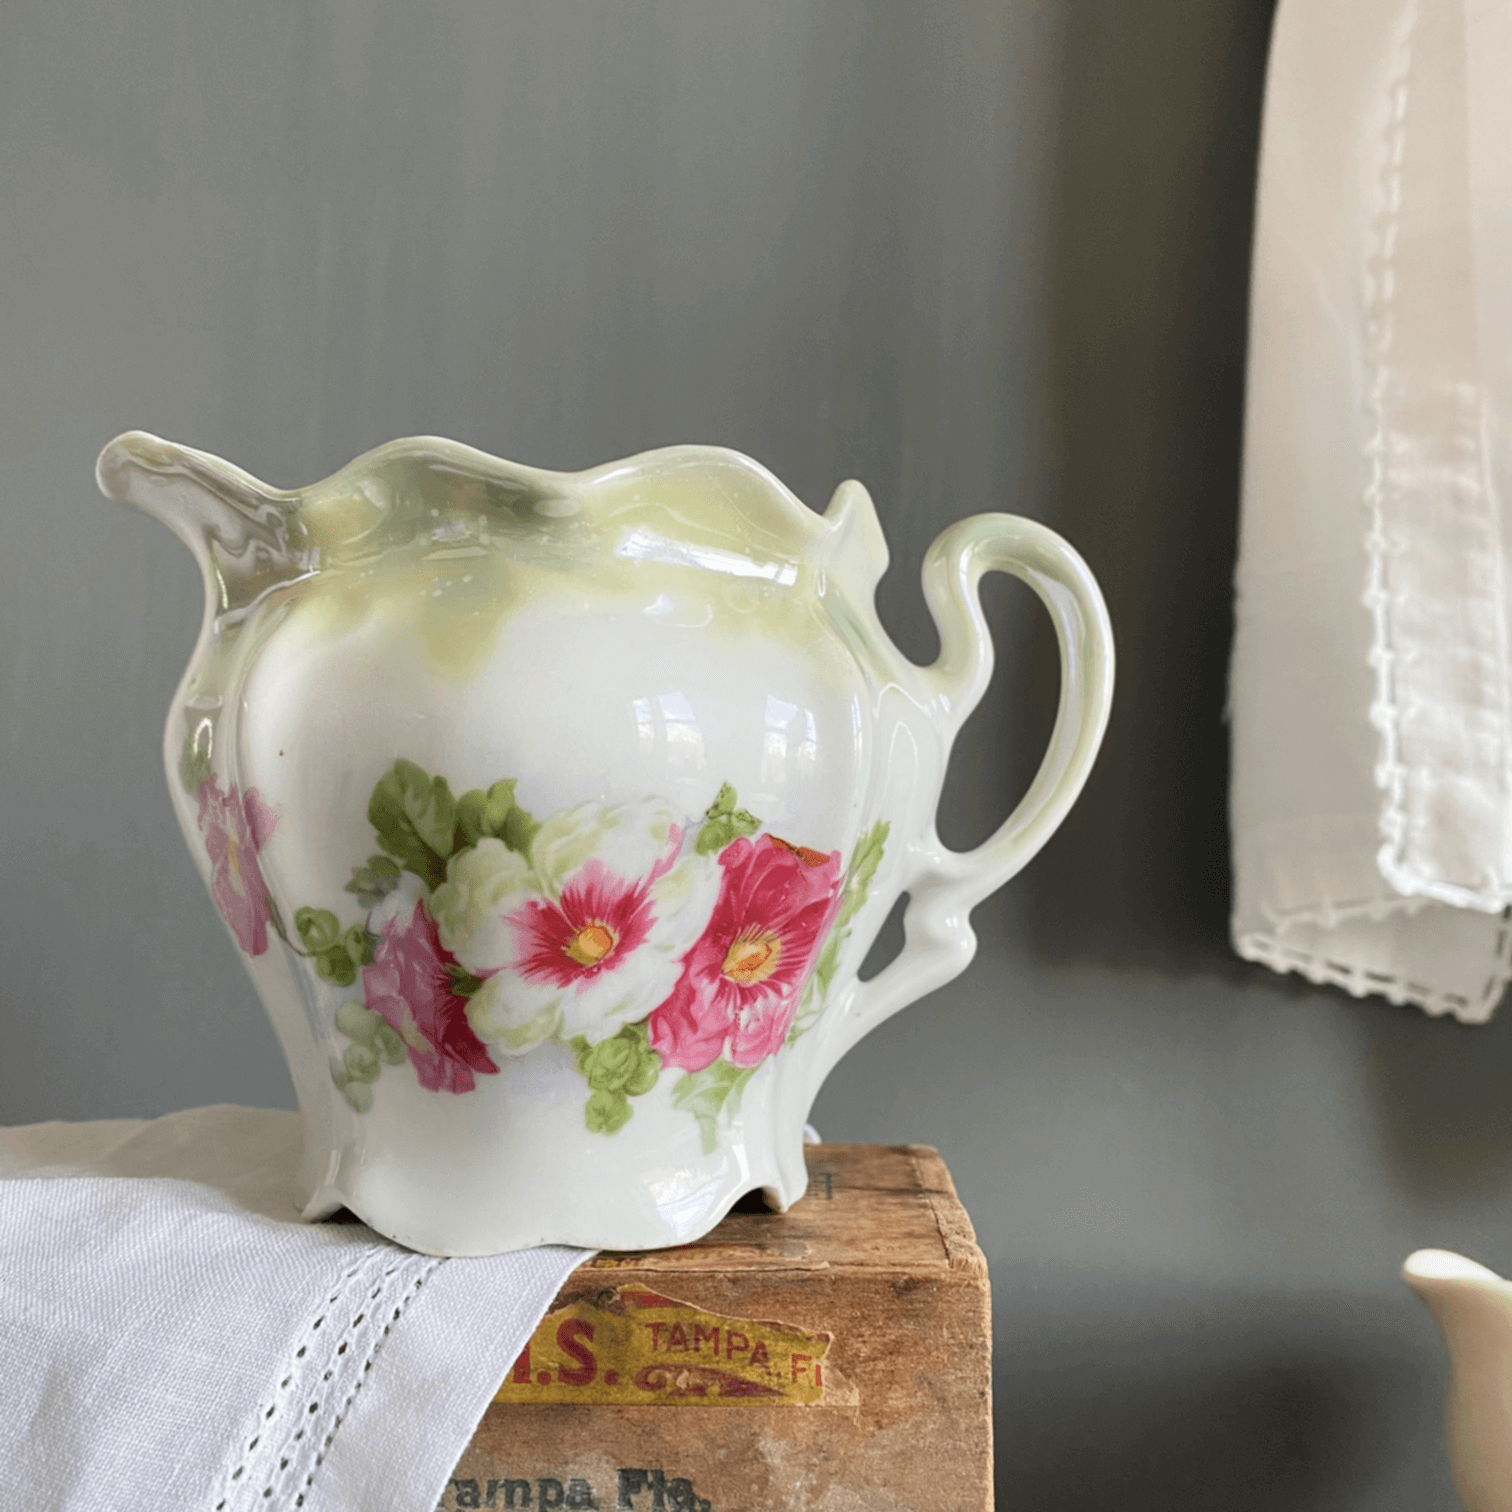 Antique Bavarian Porcelain Creamer - Green Lusterware with Pink and White Flowers Made in Bavaria c.1898-1904